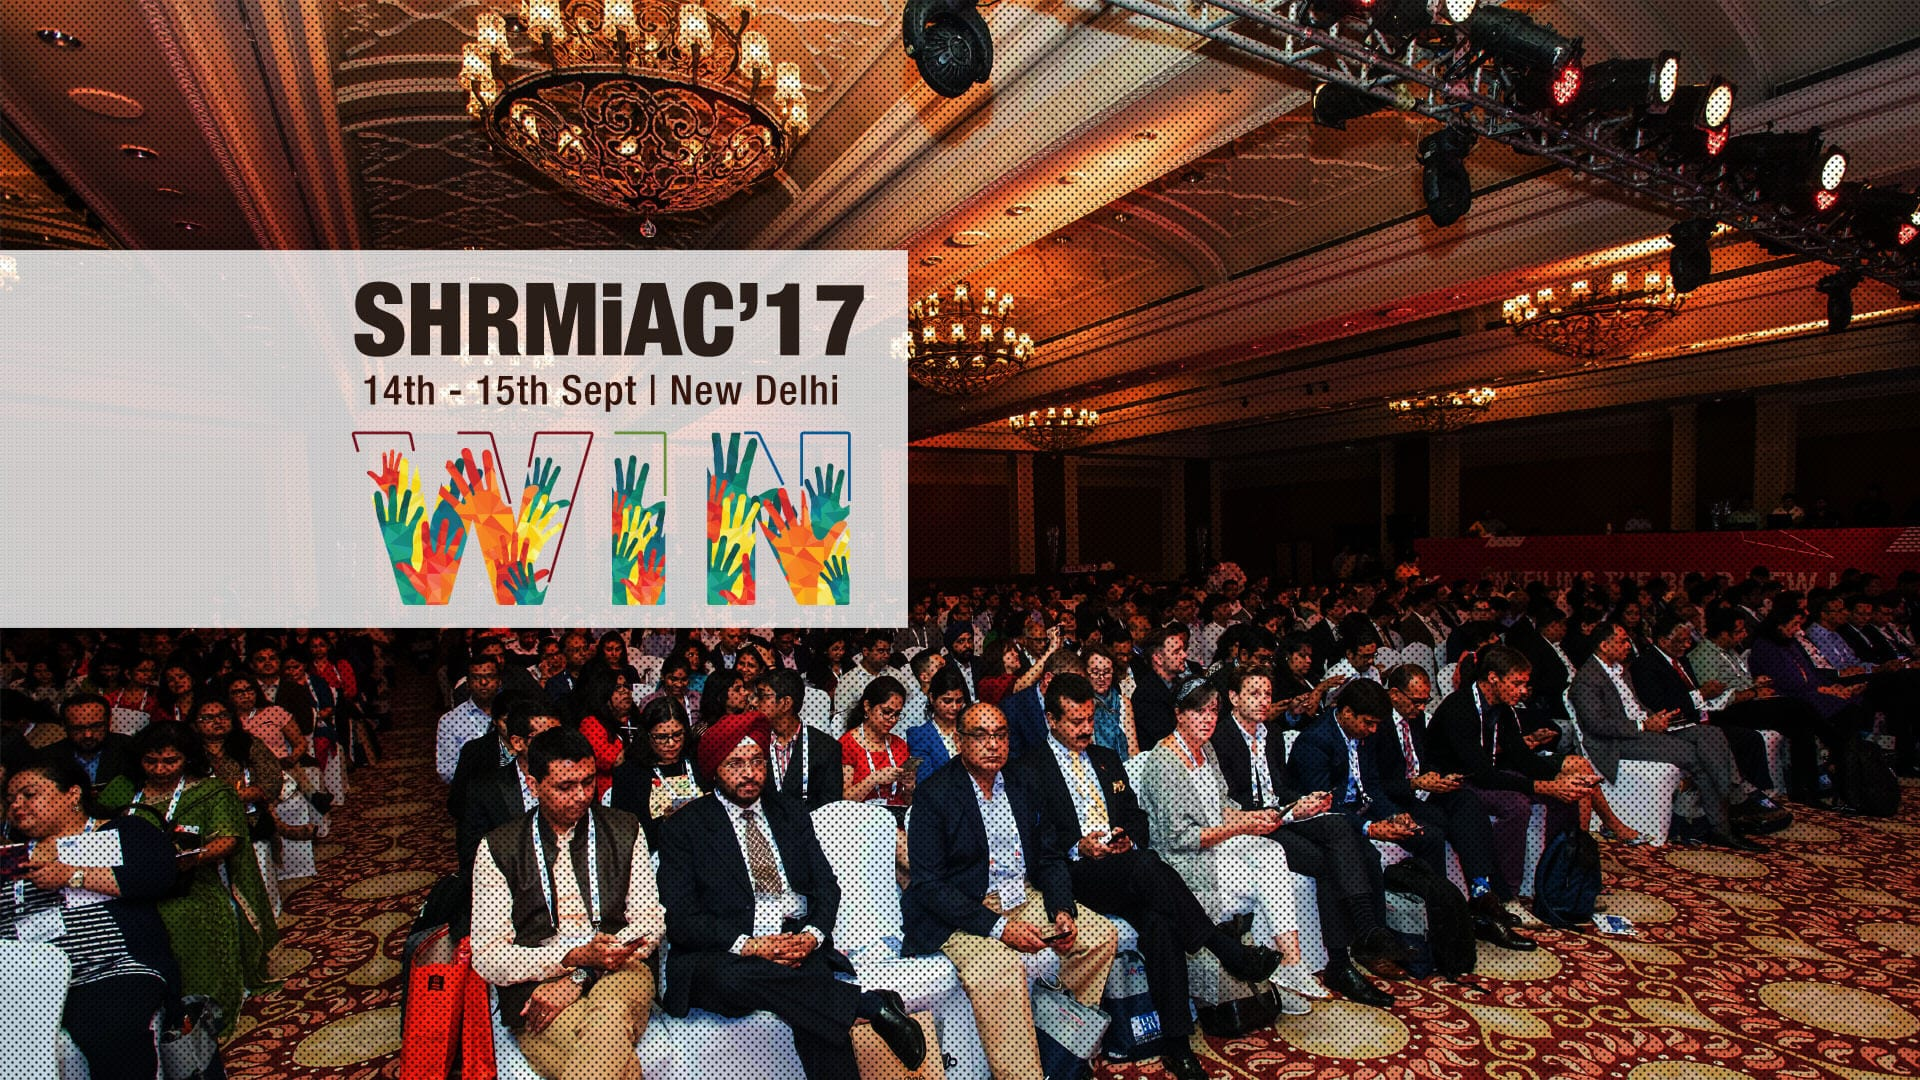 SHRM India to host India's leading HR and business conference in September 2017